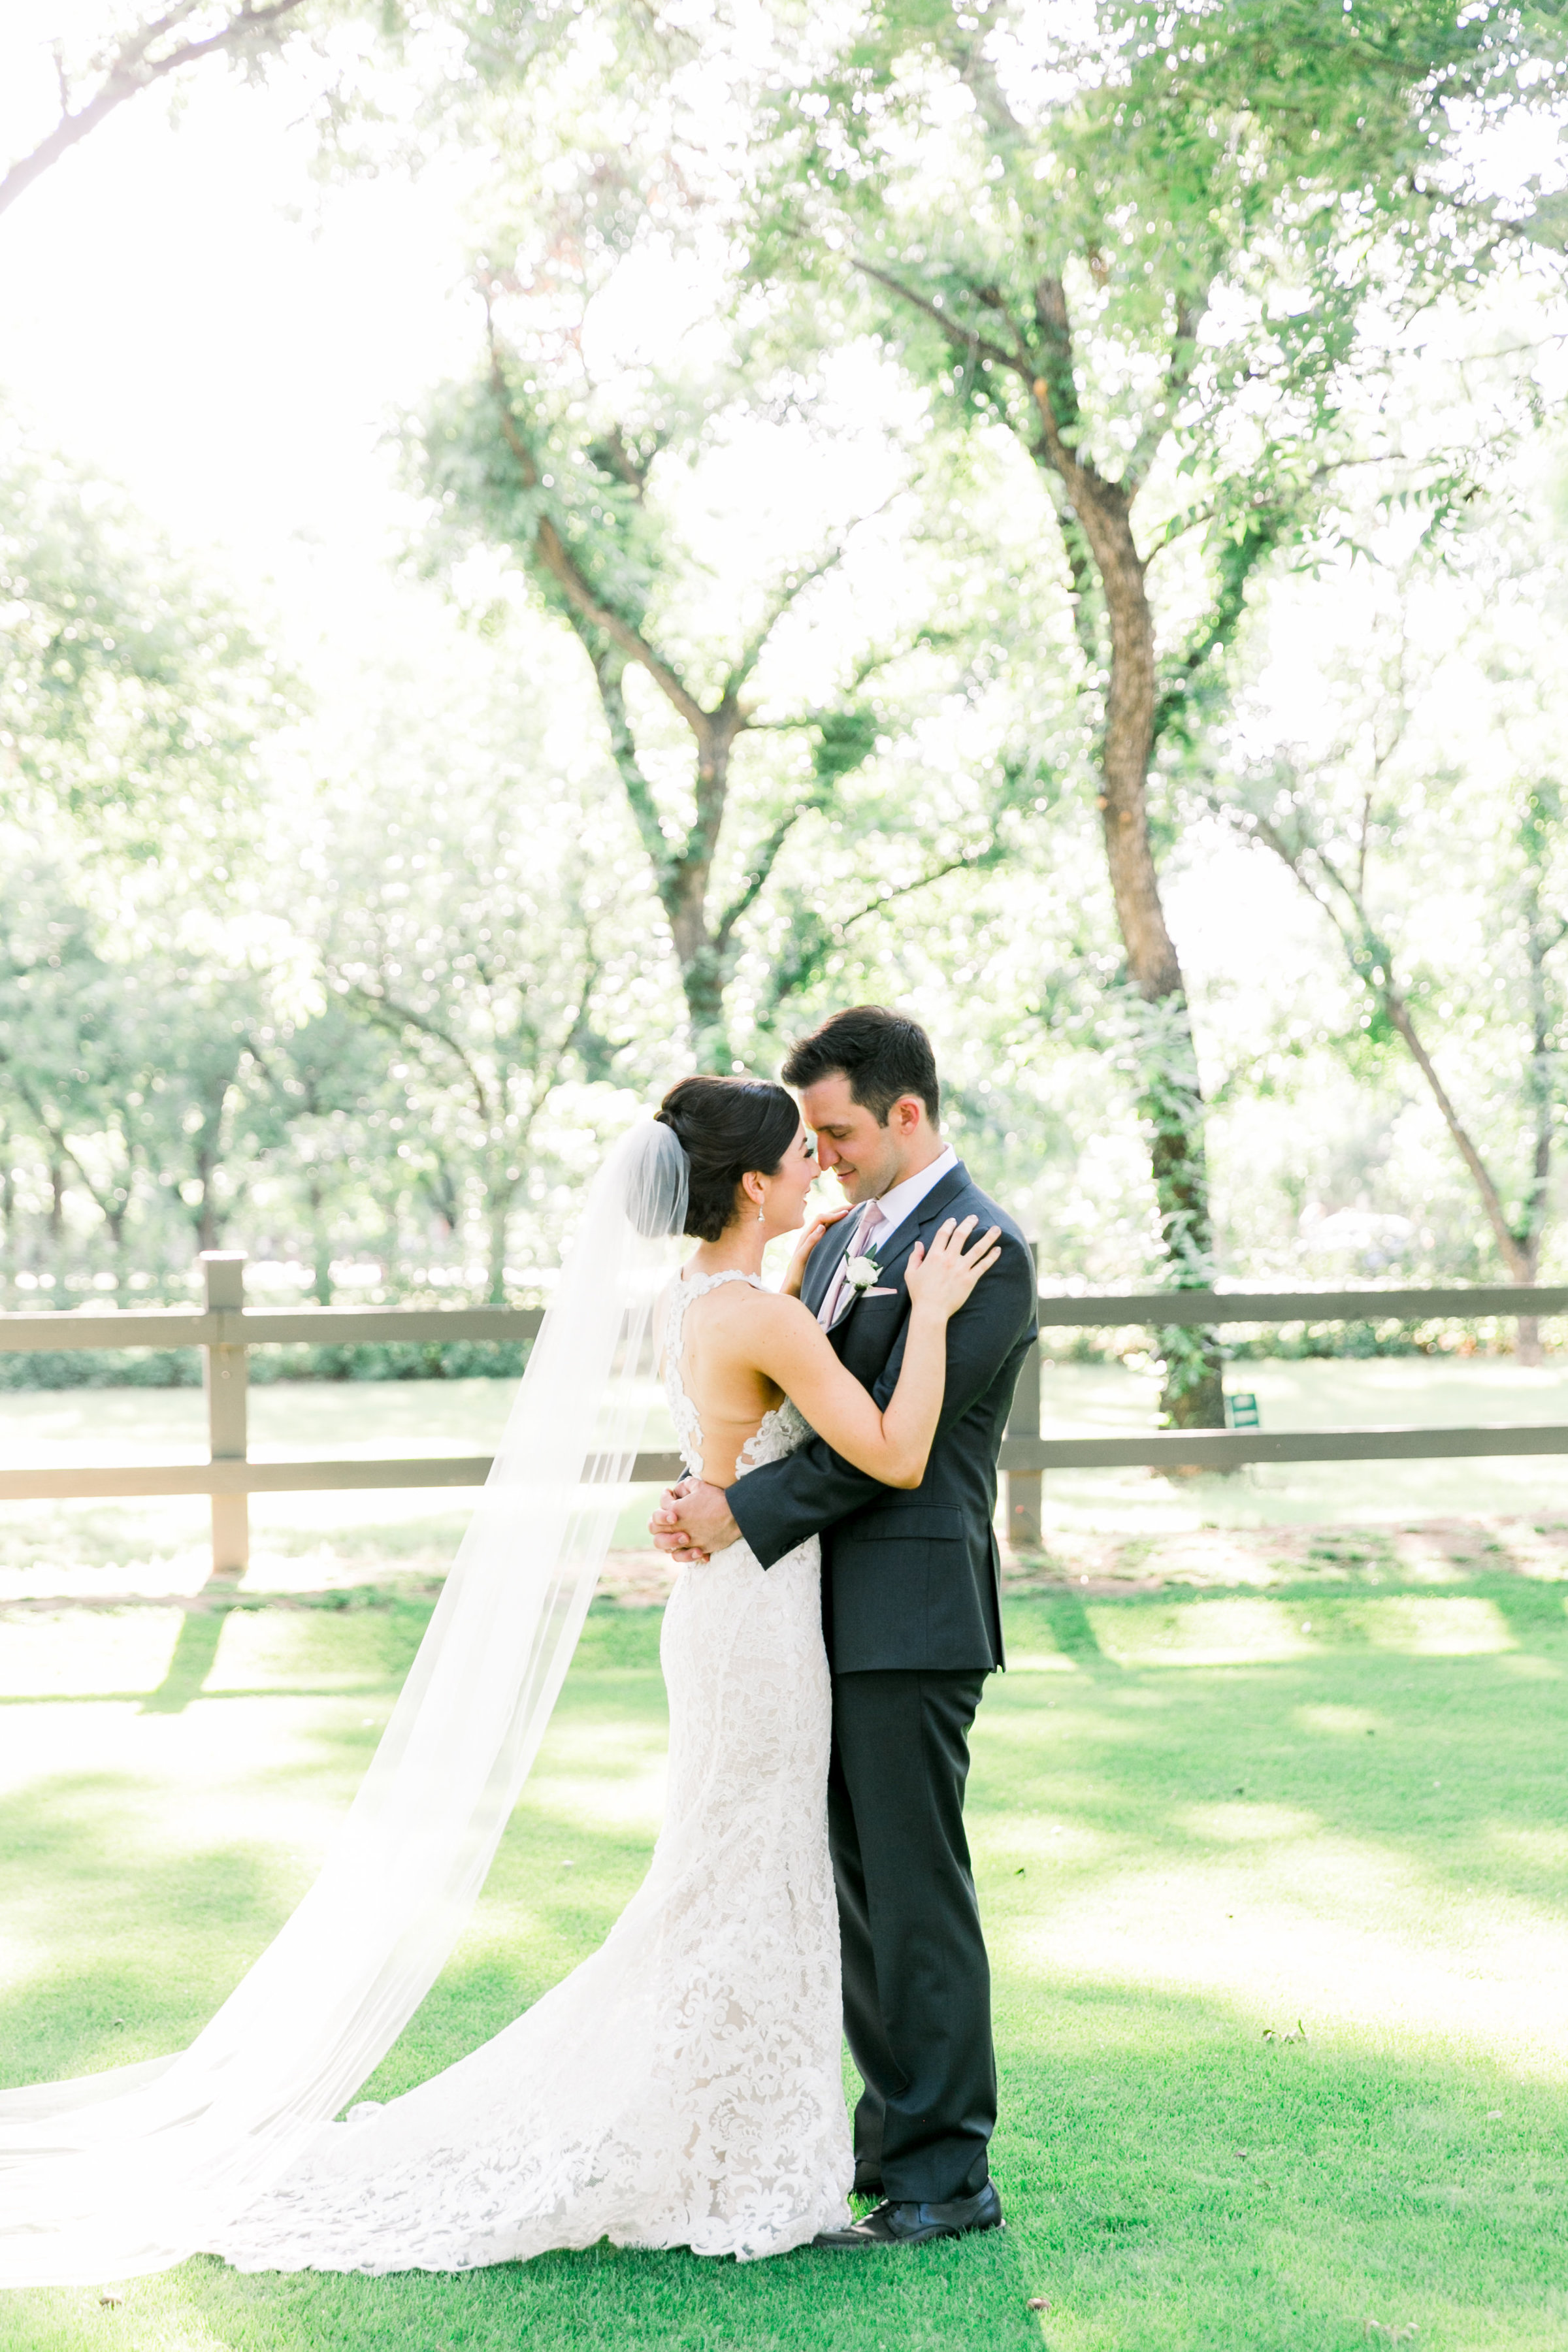 Karlie Colleen Photography - Venue At The Grove - Arizona Wedding - Maggie & Grant -57